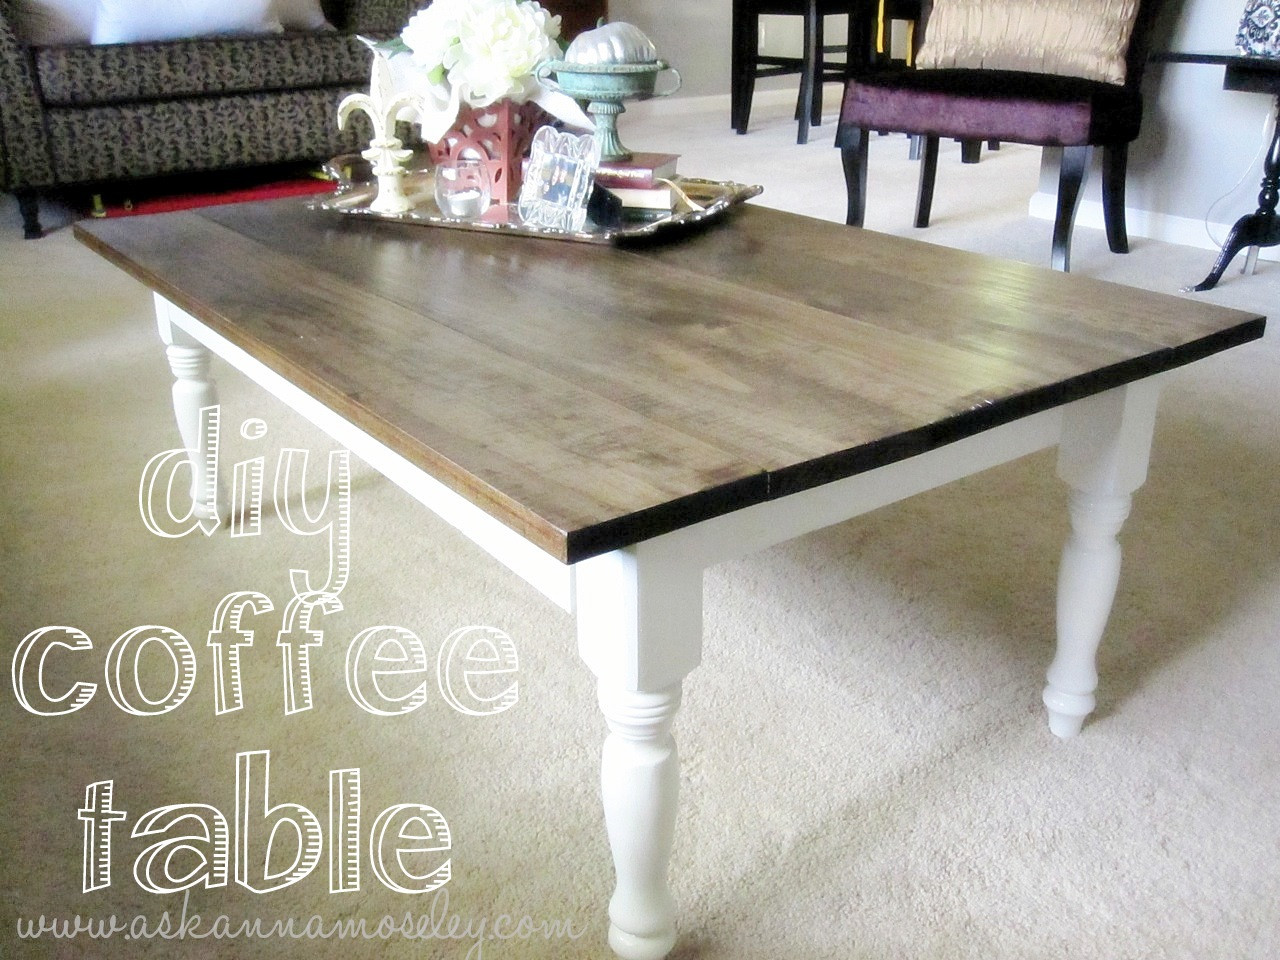 Best ideas about DIY Coffee Table Pinterest . Save or Pin DIY Coffee Table Pinterest Inspired Ask Anna Now.